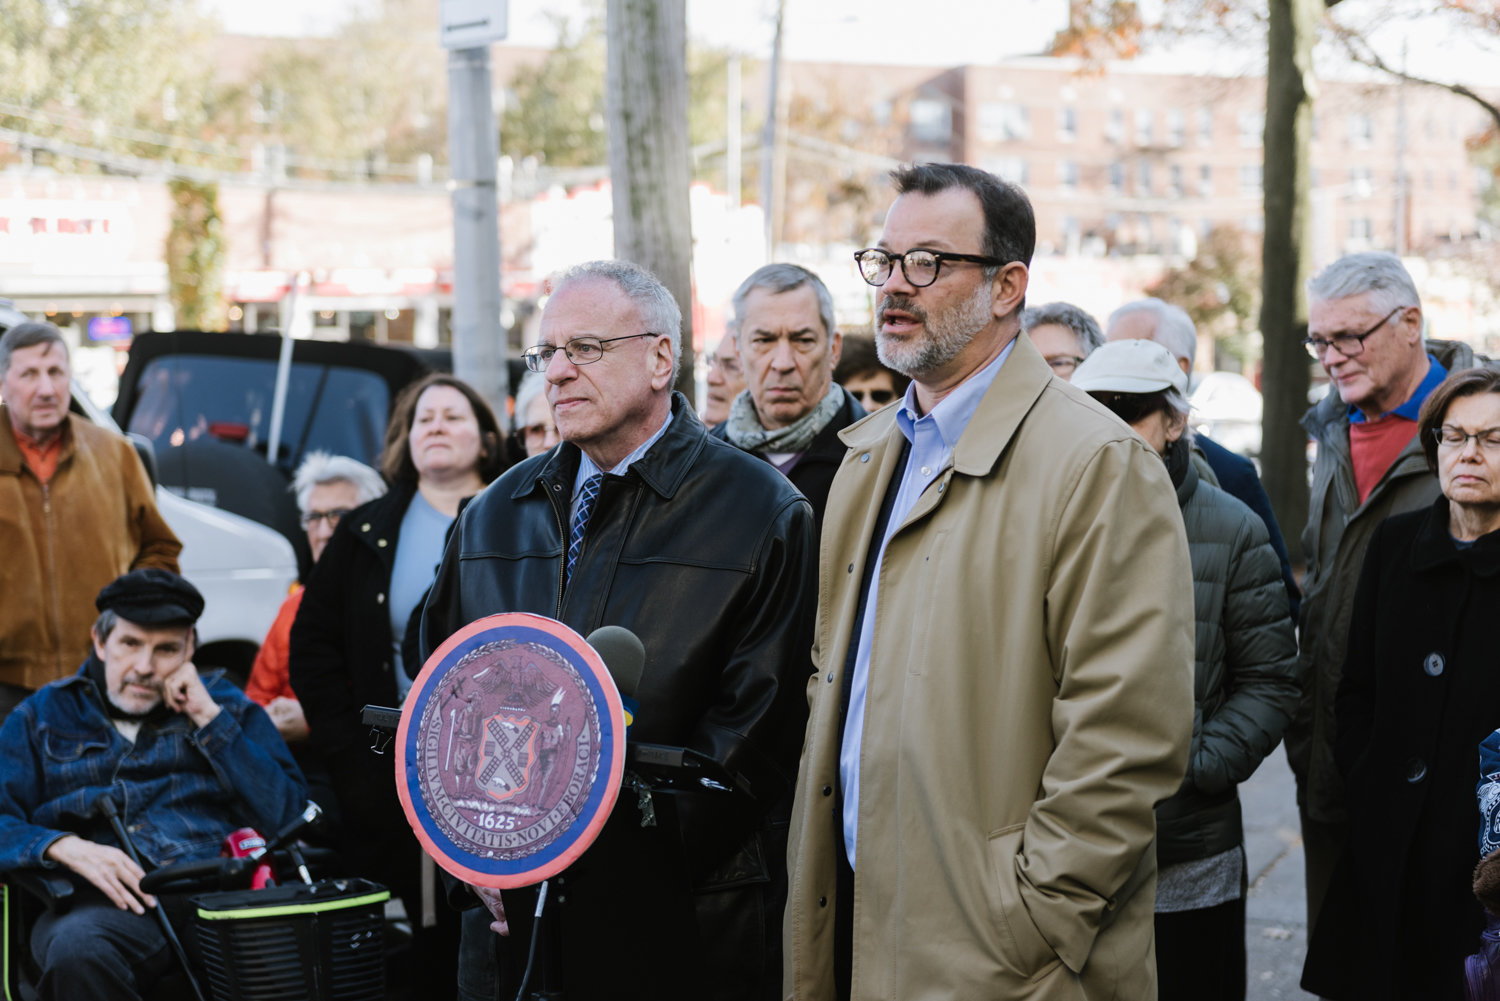 Assemblyman Jeffrey Dinowitz and Councilman Andrew Cohen speak against Montefiore Medical Center's reported plan to revive efforts to build a 10-story health care facility on the empty lot south of the intersection of West 238th Street and Riverdale Avenue.